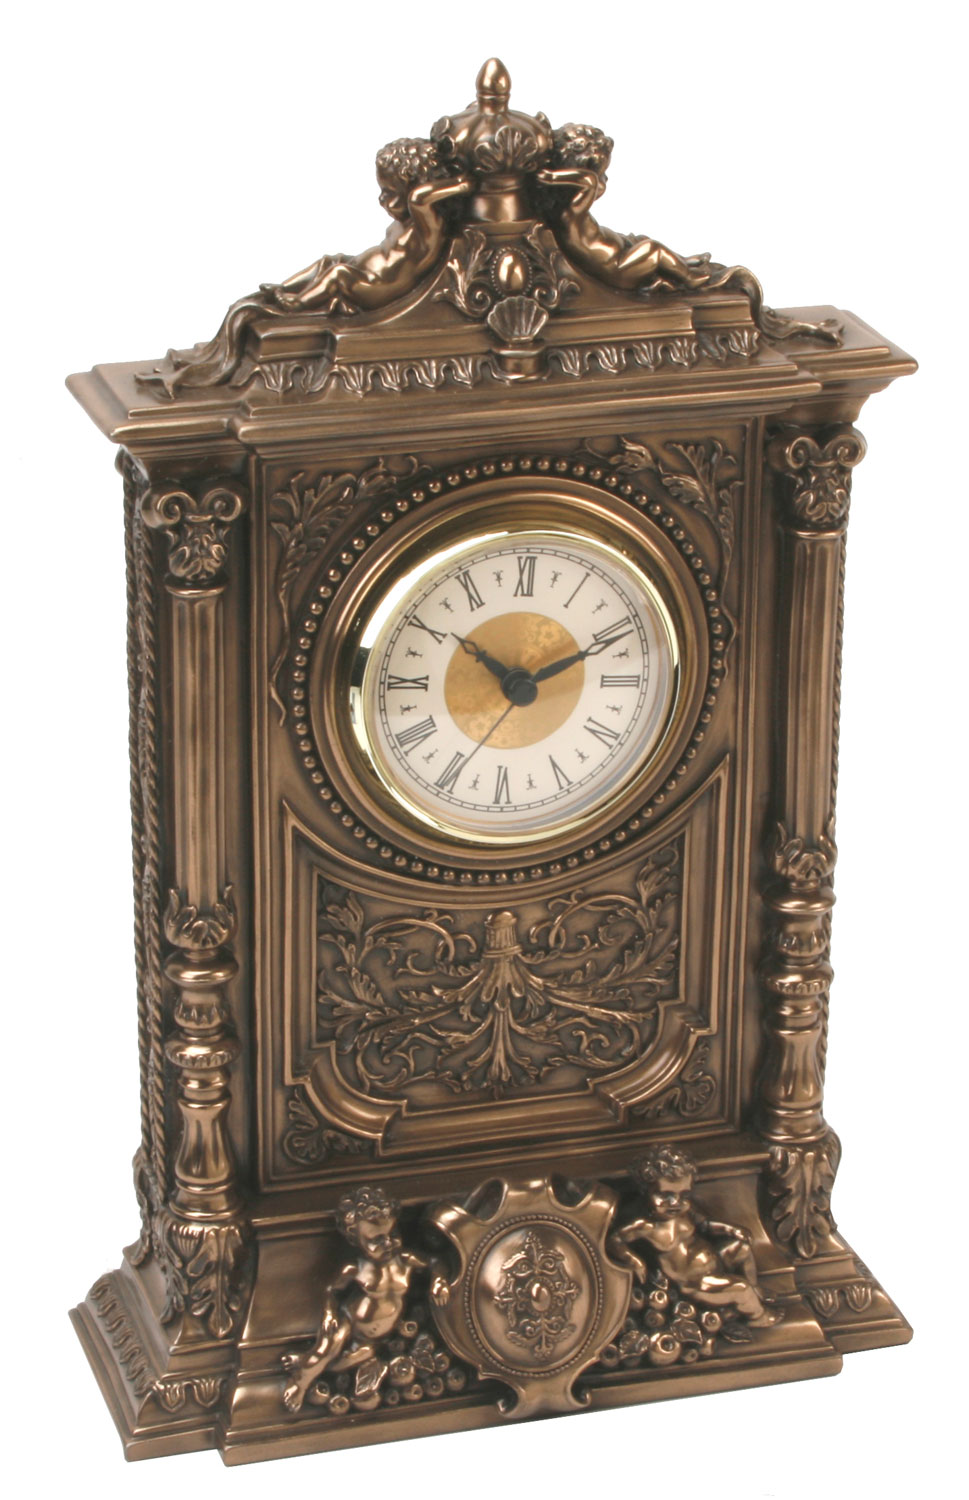 art deco antique baroque design 4 cherubs bronze colour finish mantel clock 12 ebay. Black Bedroom Furniture Sets. Home Design Ideas